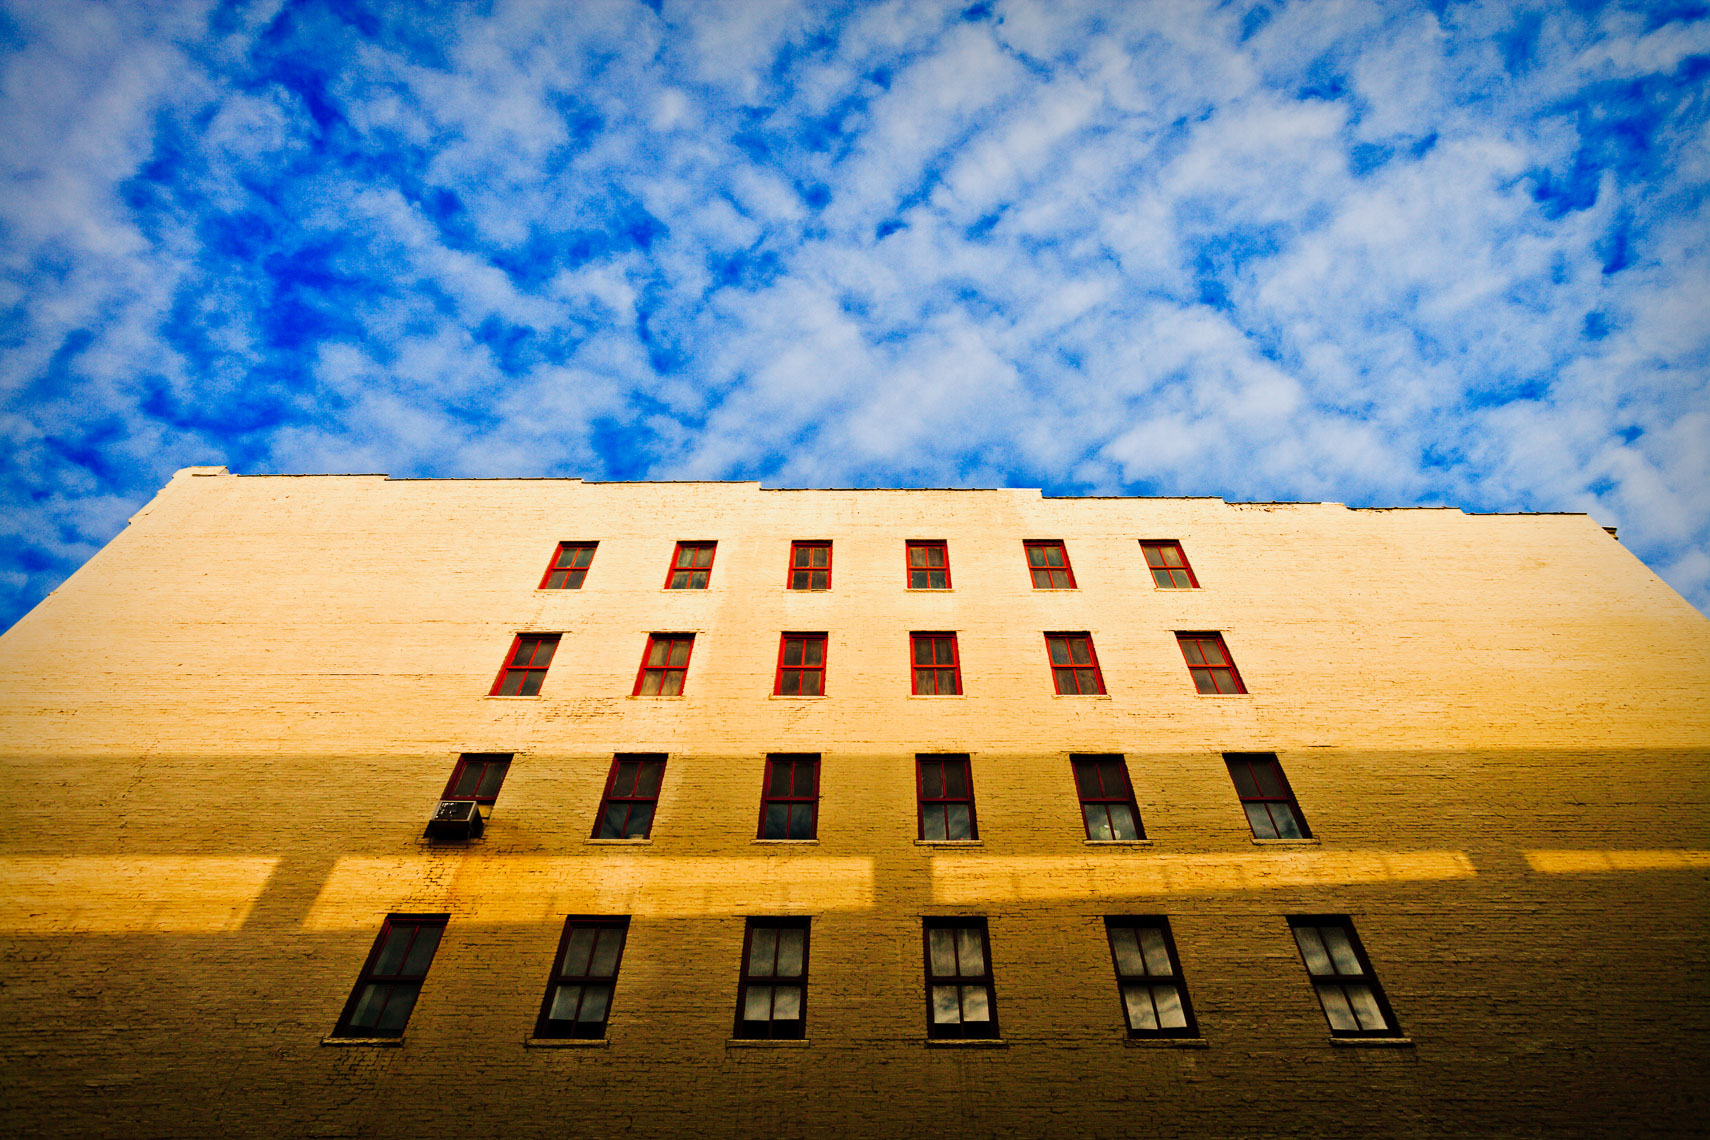 Architectural Photograph with Clouds